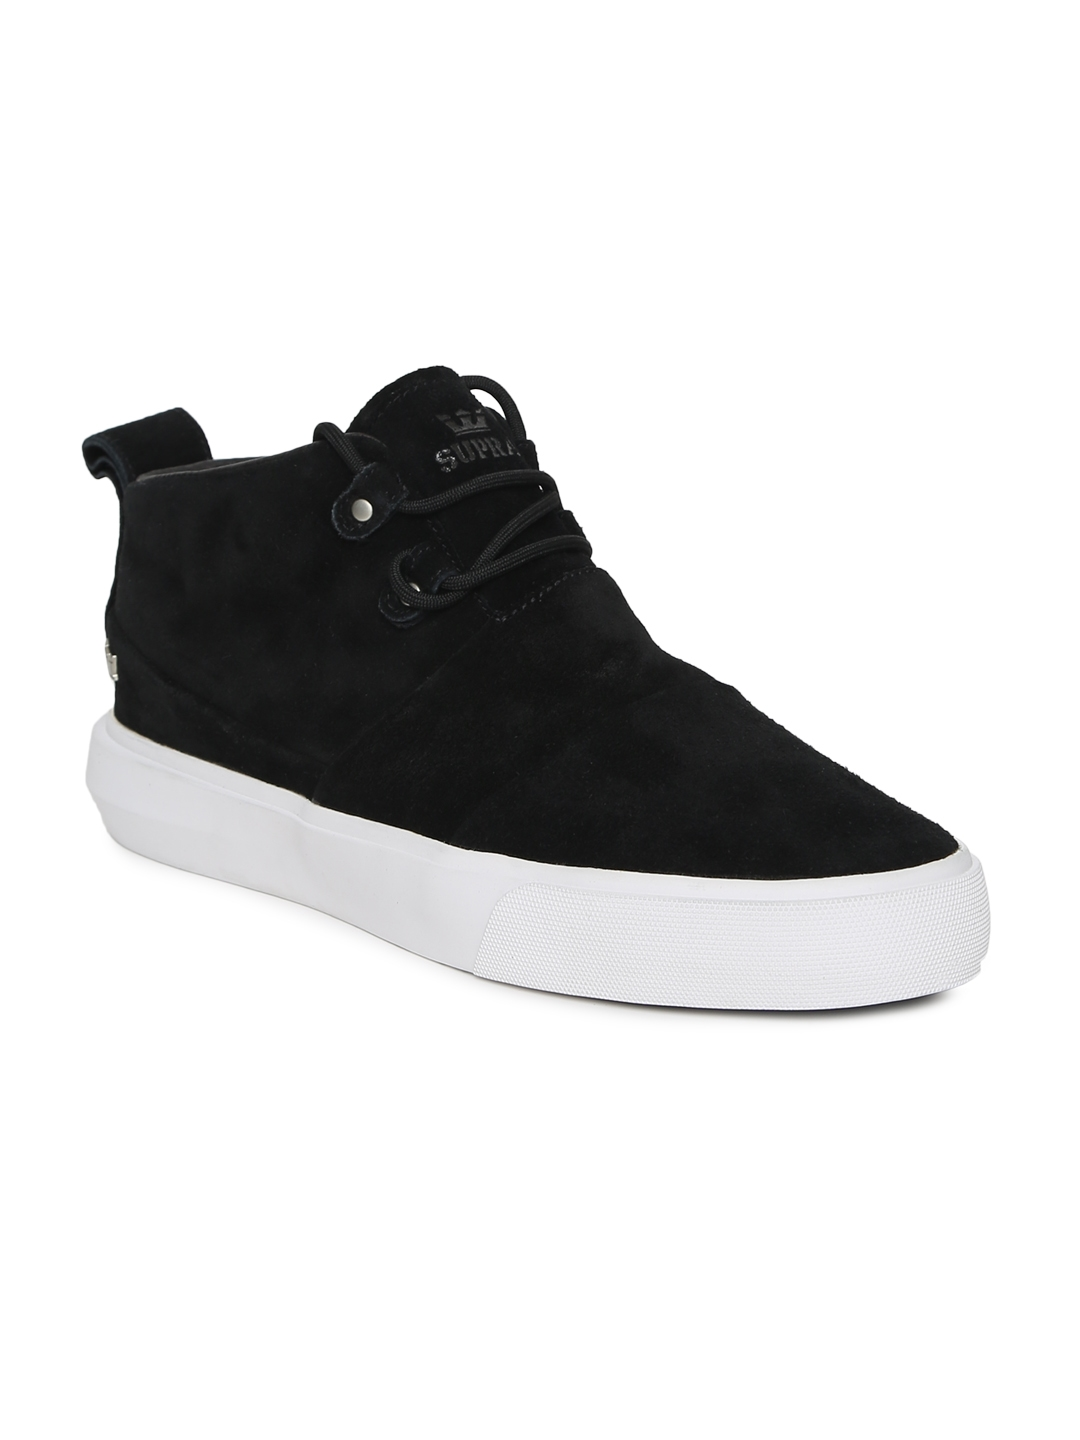 19a5bf7134 Buy Supra Men Black CHARLES Suede Sneakers - Casual Shoes for Men ...